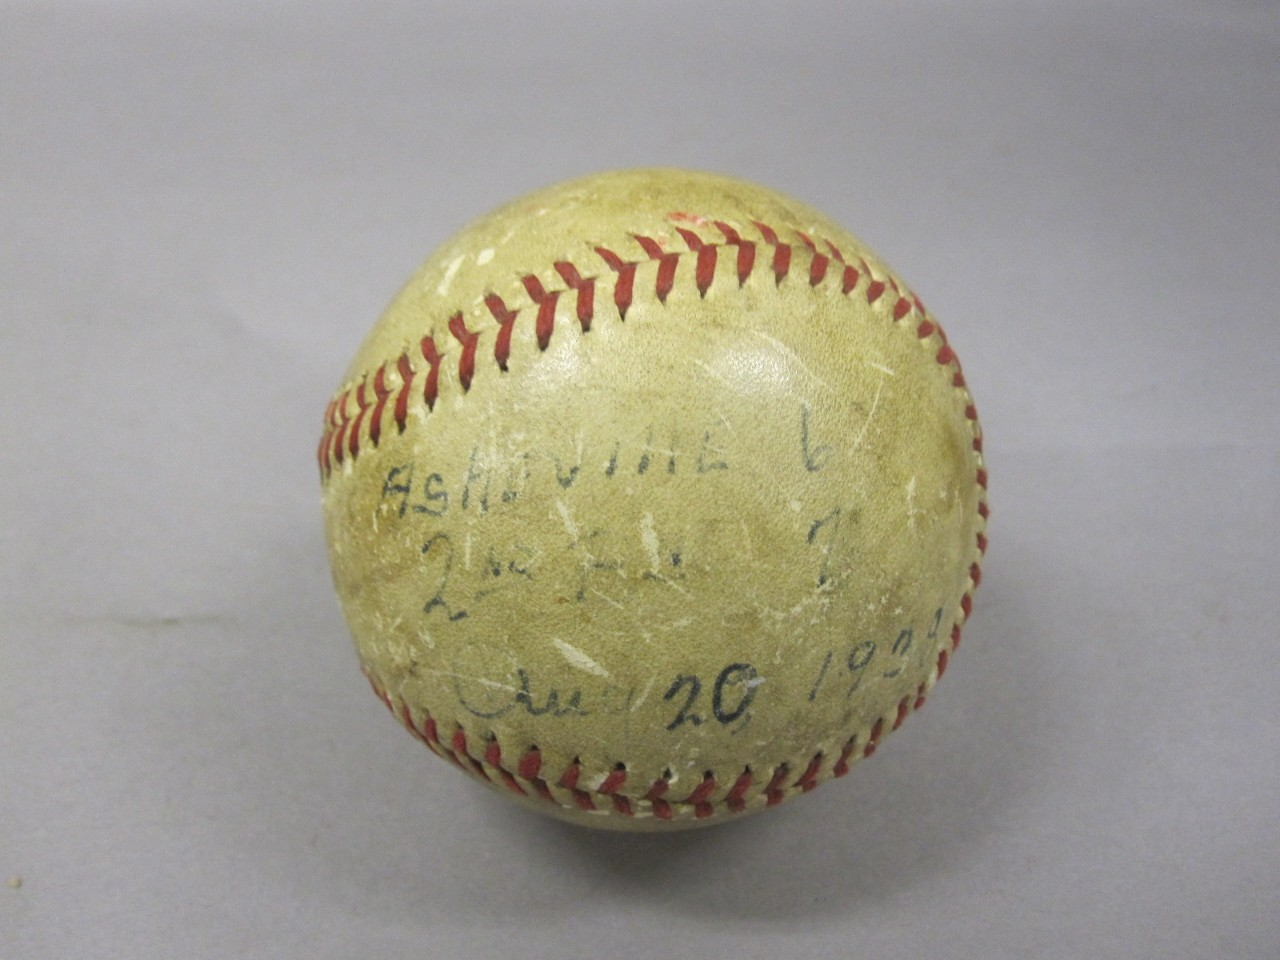 White baseball with red stitching used in game signed with score and date